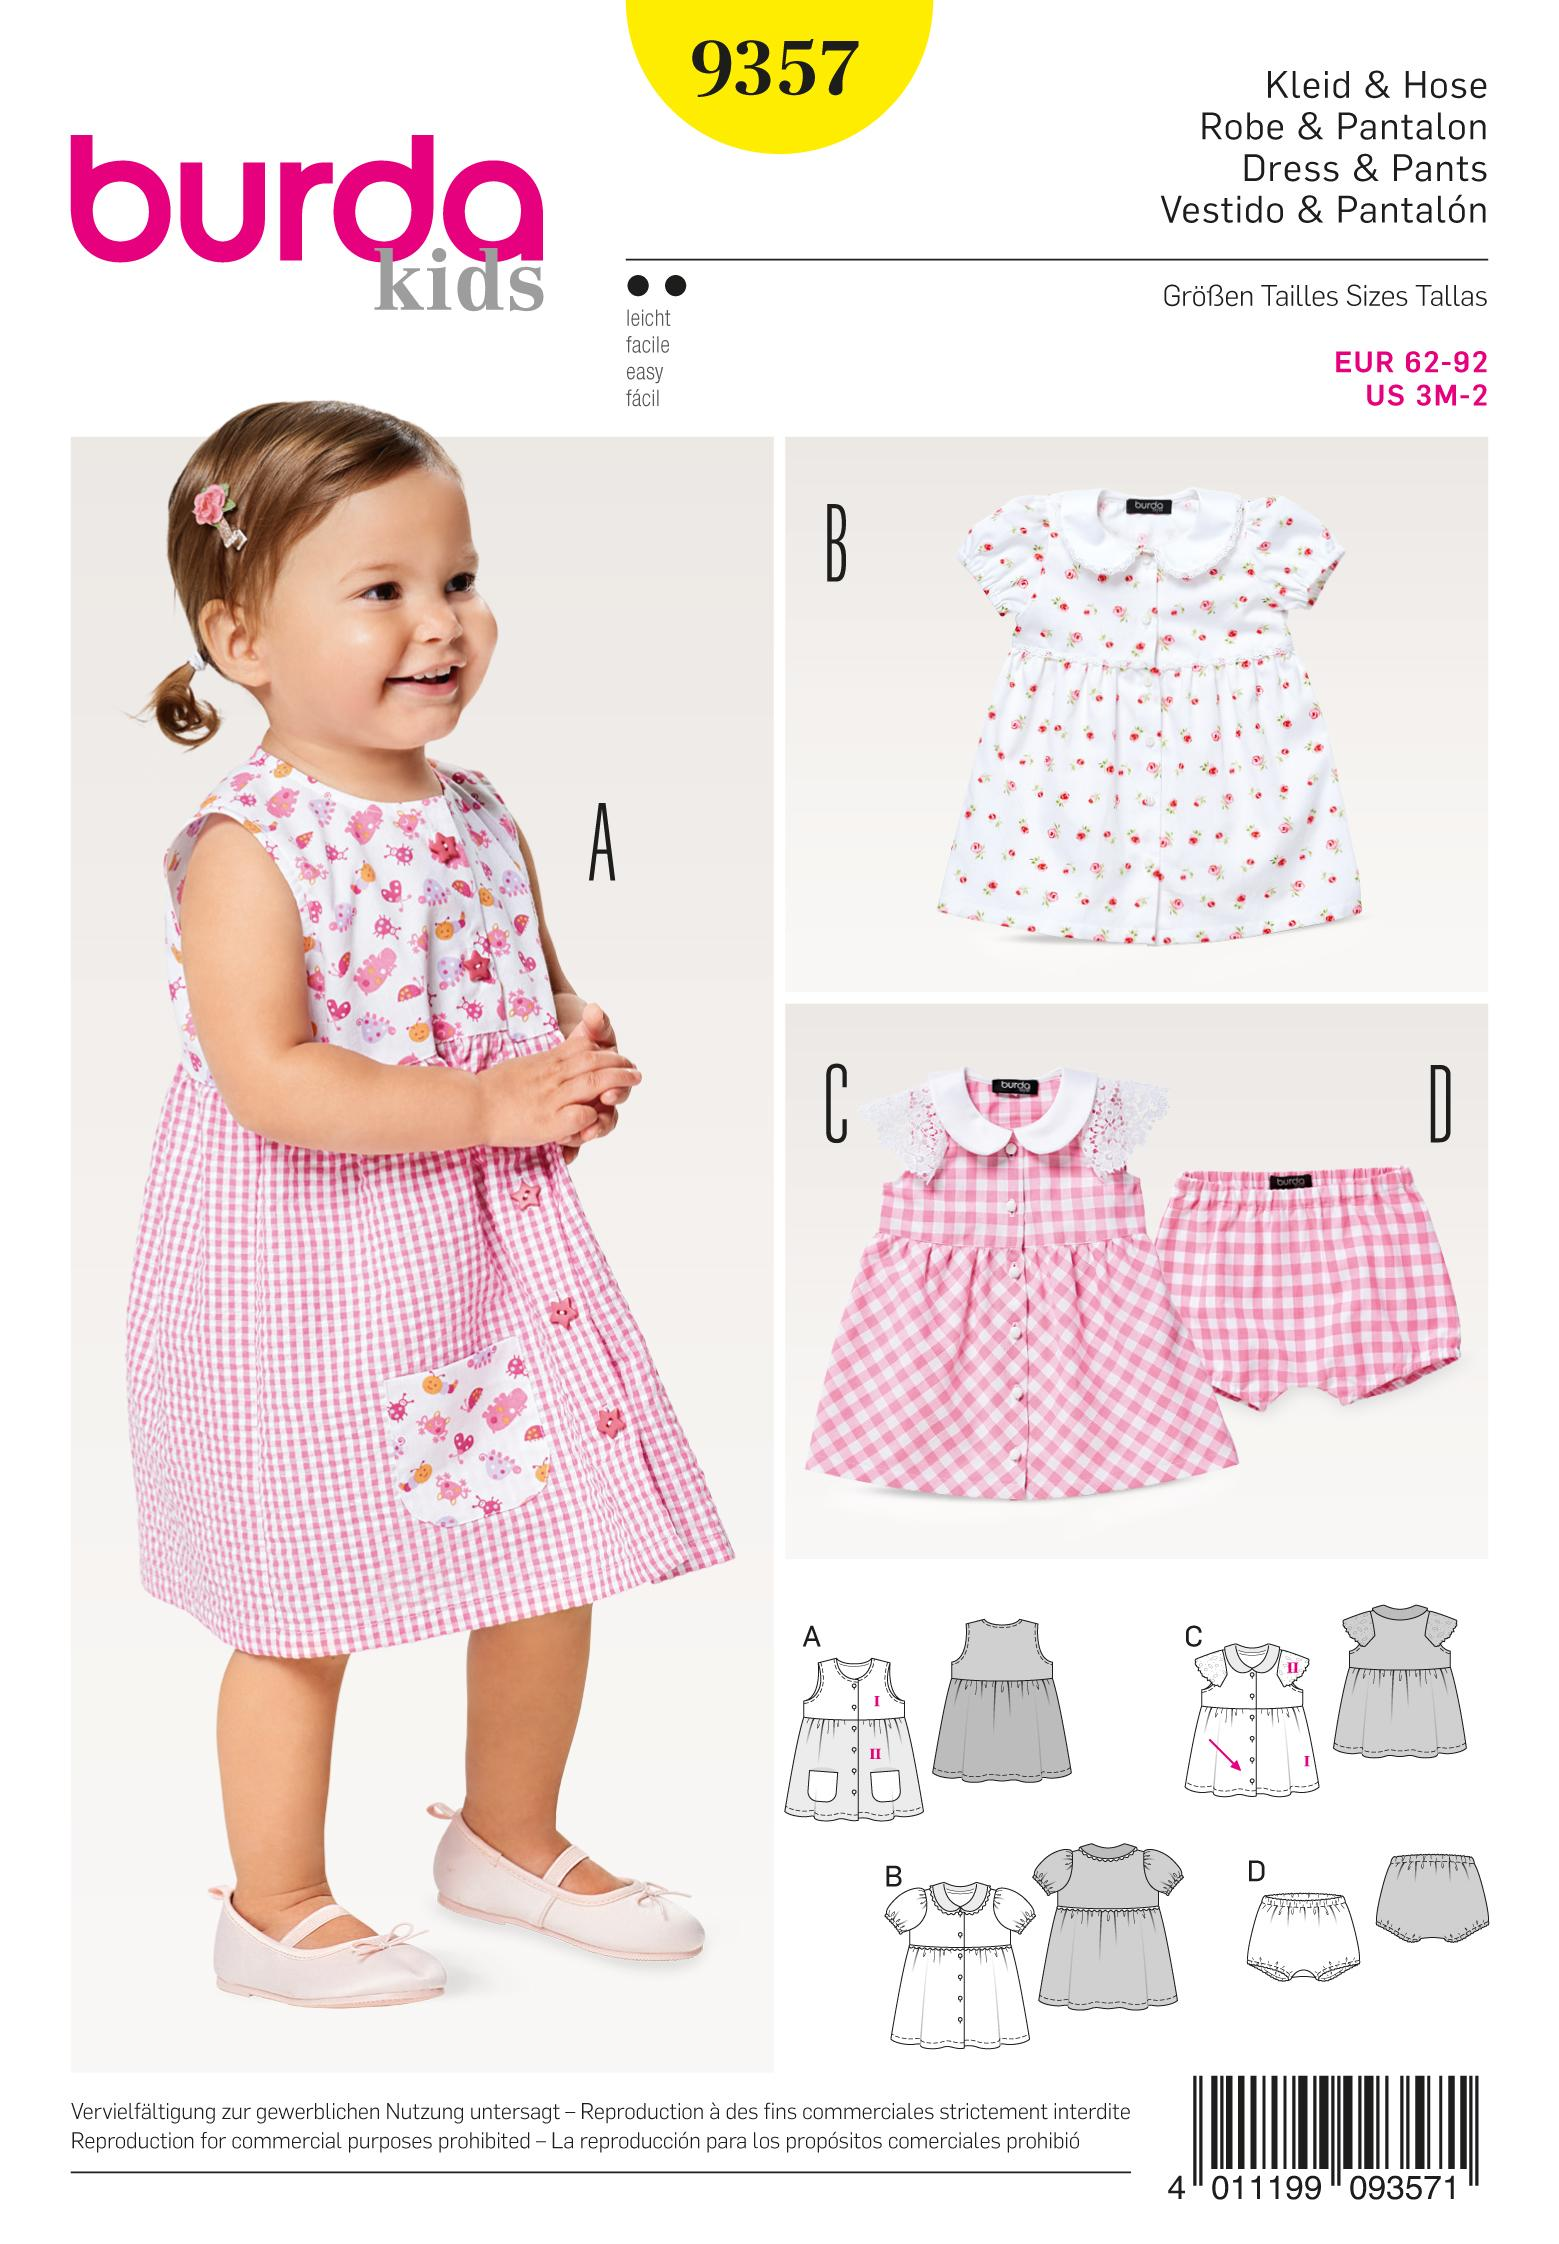 Burda B9357 Baby Collar Dress and Panties